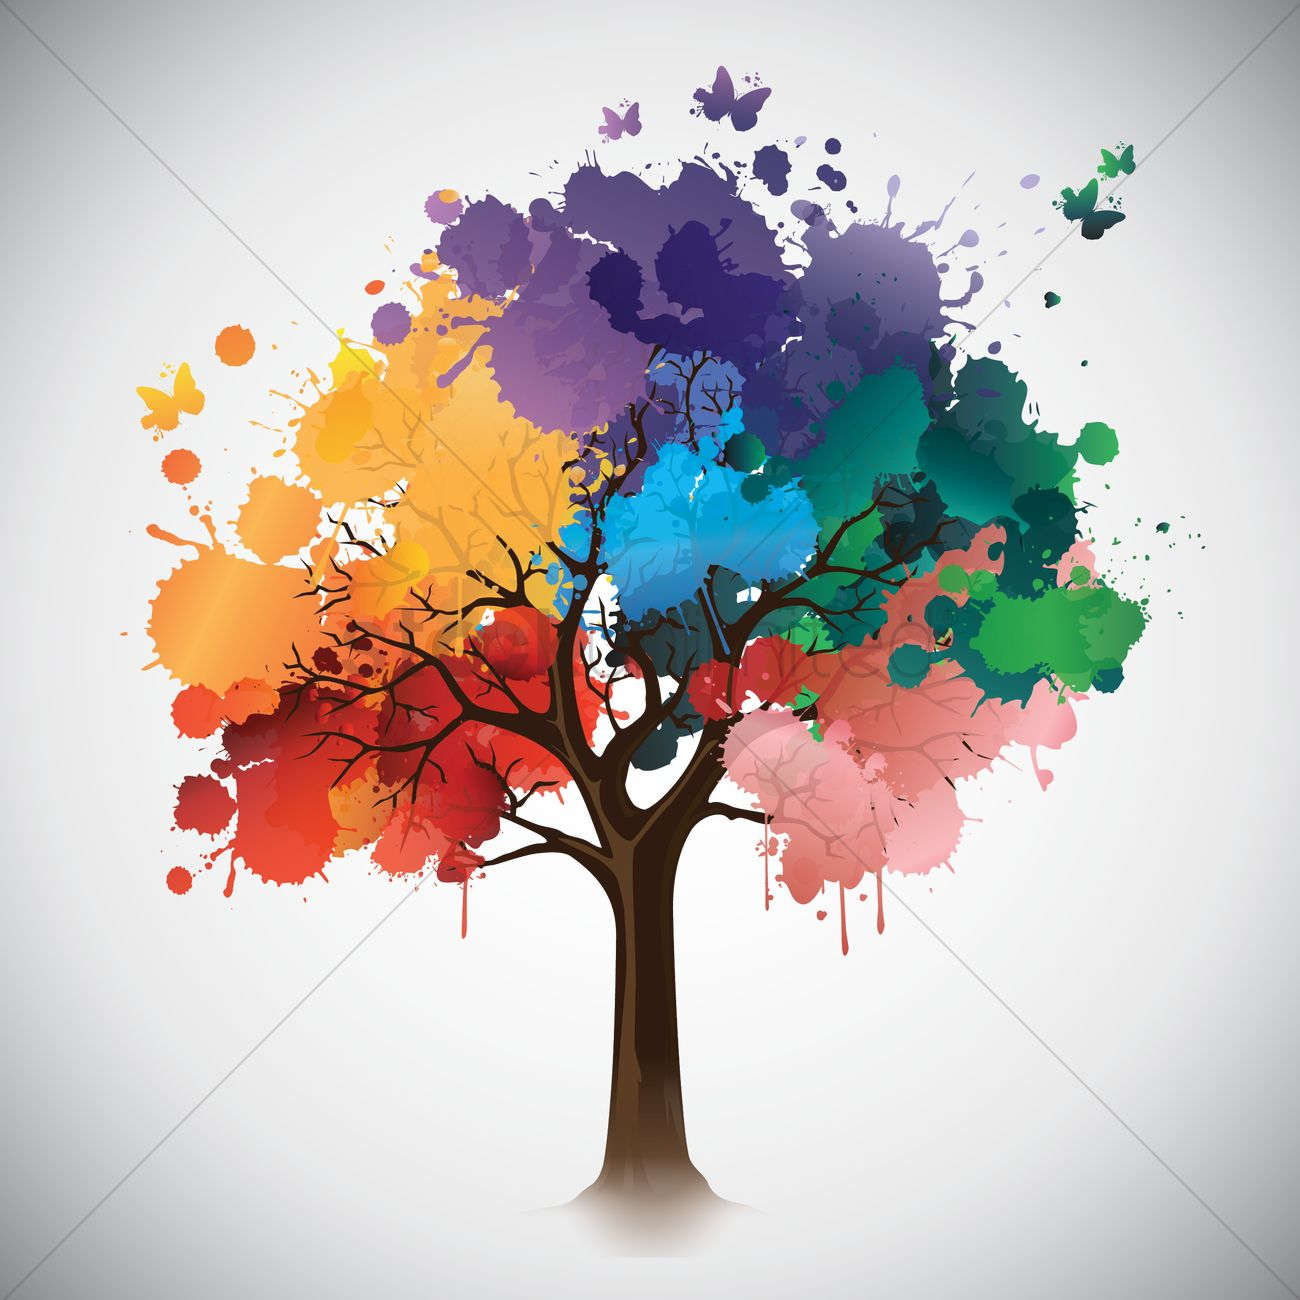 Tree leaves made out of paint splatters vector image for Pintura color albero